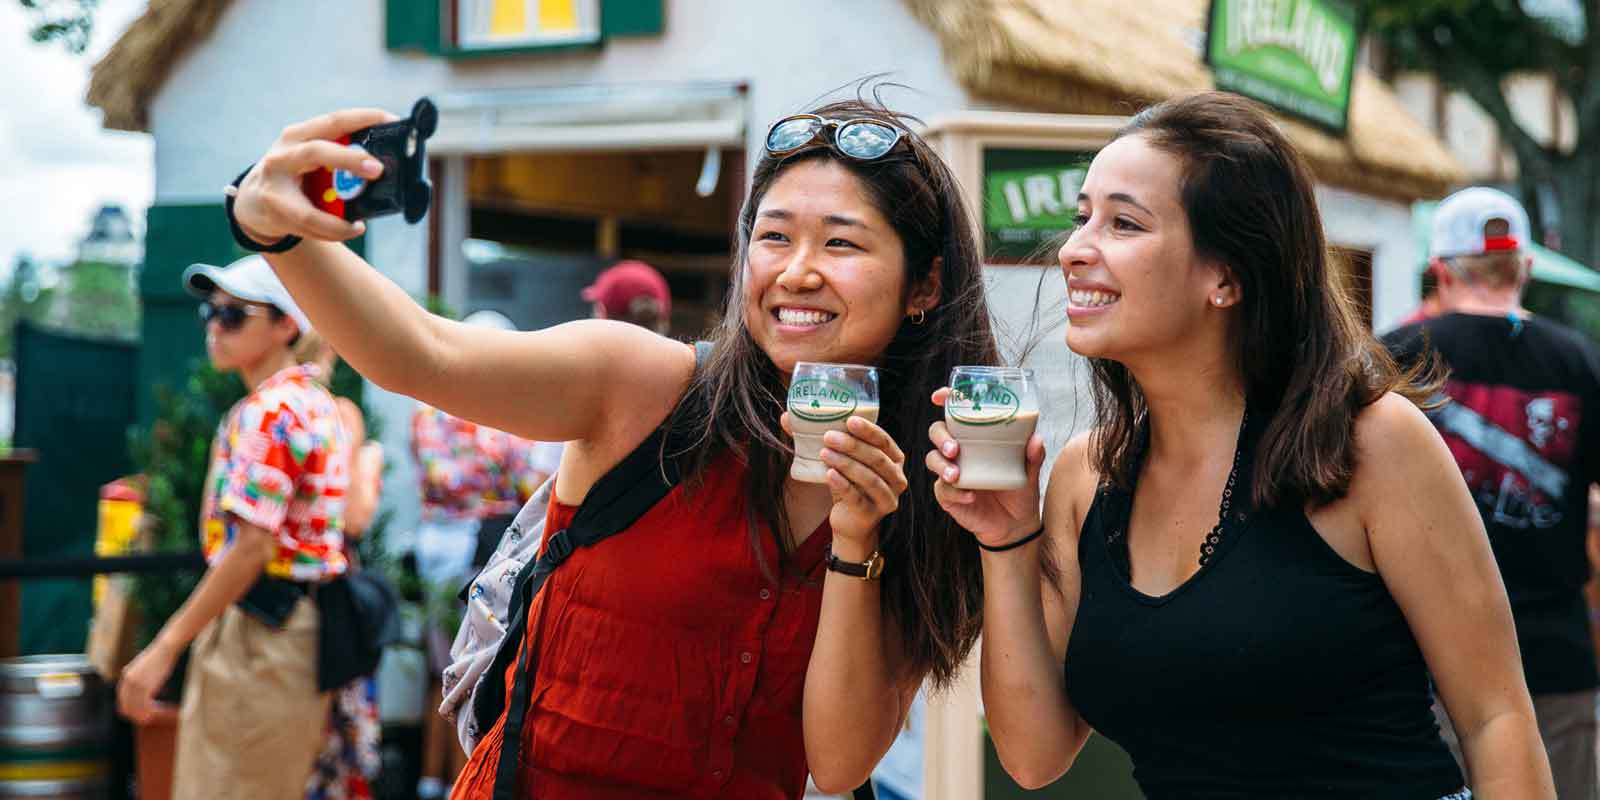 2 women pose for a selfie with a drink from the Ireland food stall at Epcot's International Food & Wine Festival.